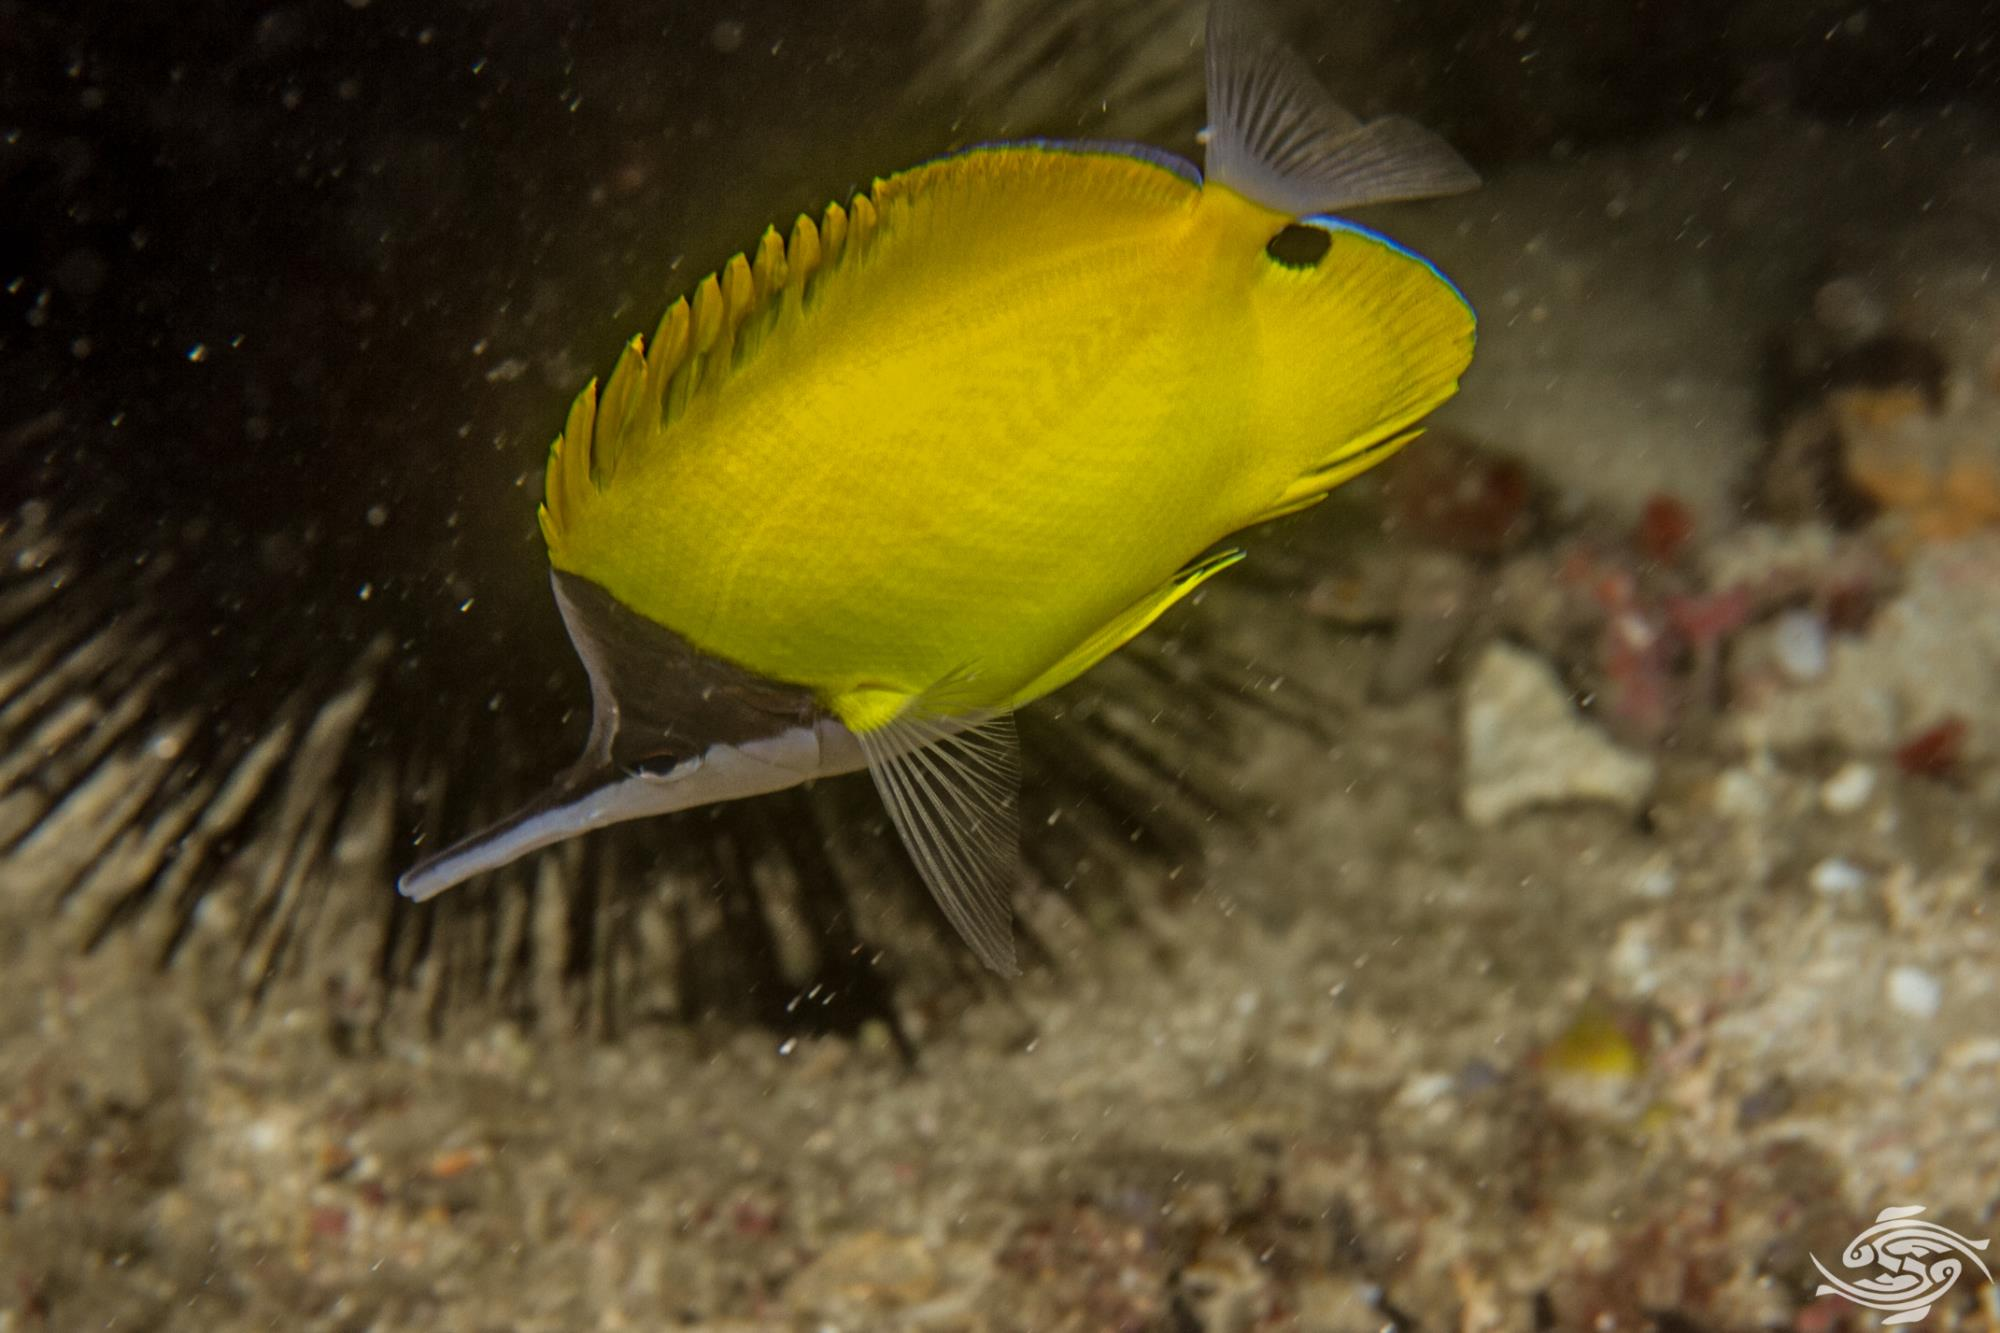 yellow longnose butterflyfish or forceps butterflyfish, Forcipiger flavissimus,